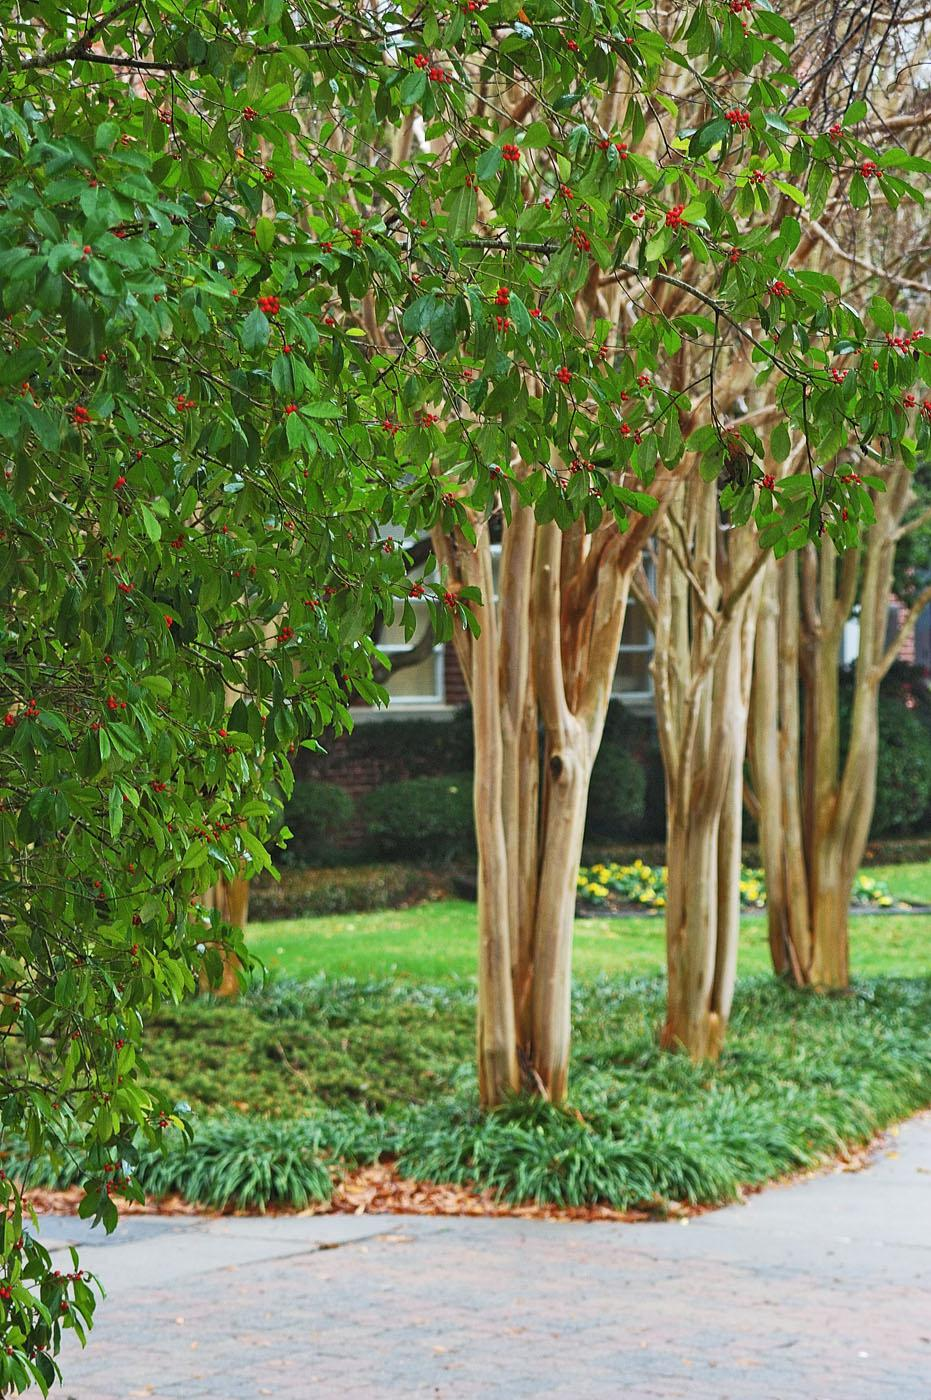 """Winter landscapes look good when they include bones, berries and bark. This scene has all three, with American holly and its plentiful red berries in the foreground, the smooth, shiny bark of crape myrtles, and the deep, dark greens of the bushes, which serve as the """"bones,"""" or structural foundation, of the garden."""